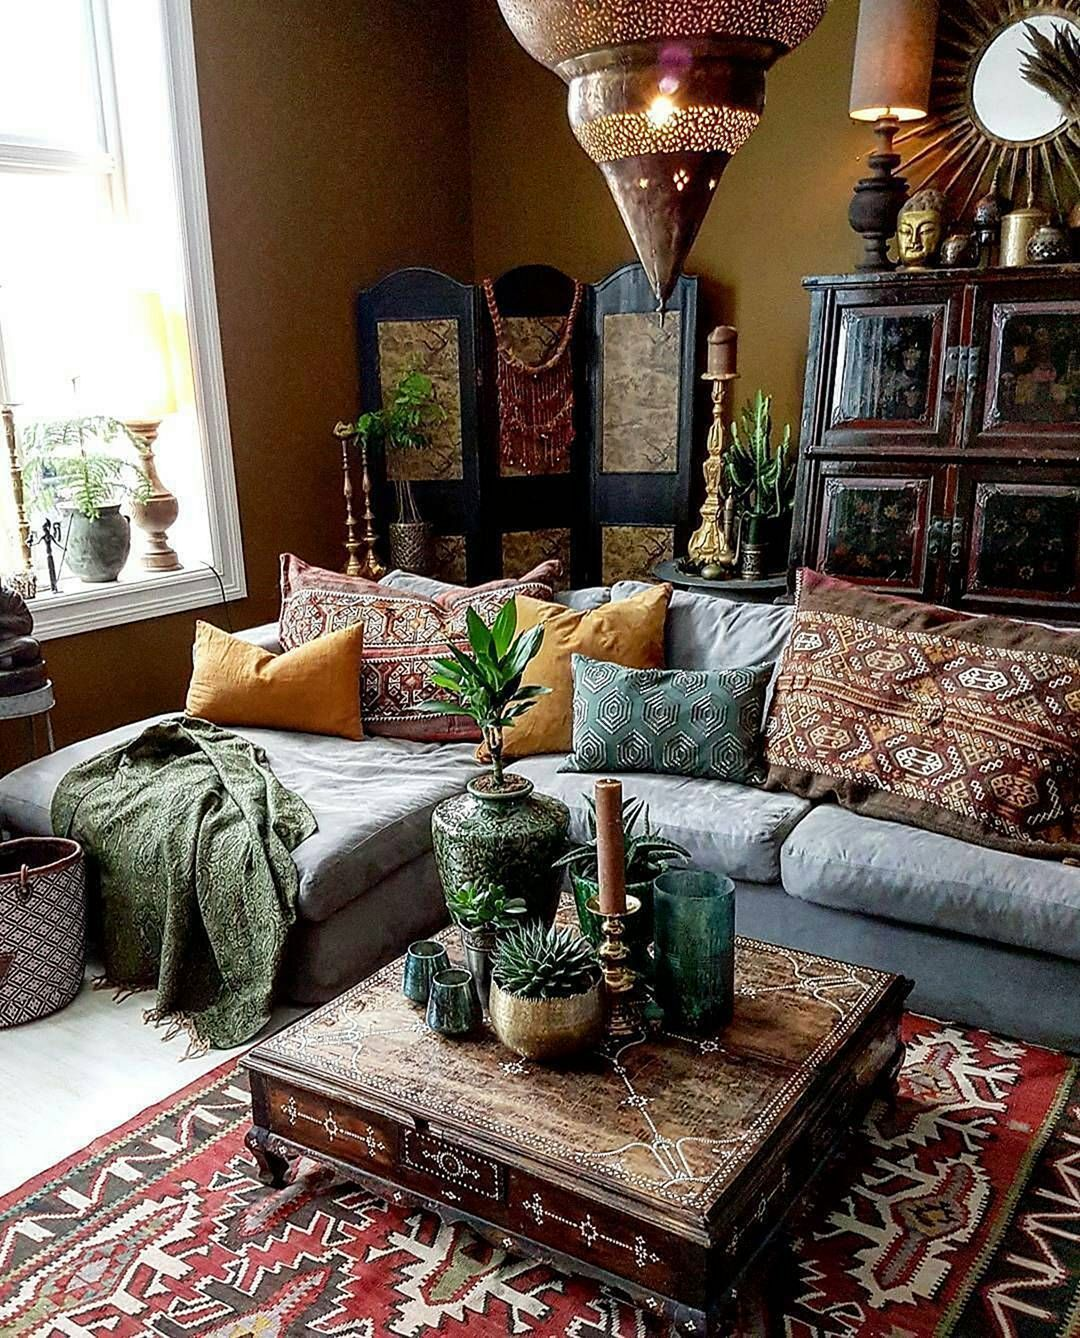 12 Best Boho Living Room Decoration Ideas That Inspires You Decor It S Hippie Living Room Moroccan Decor Living Room Bohemian Living Room Decor